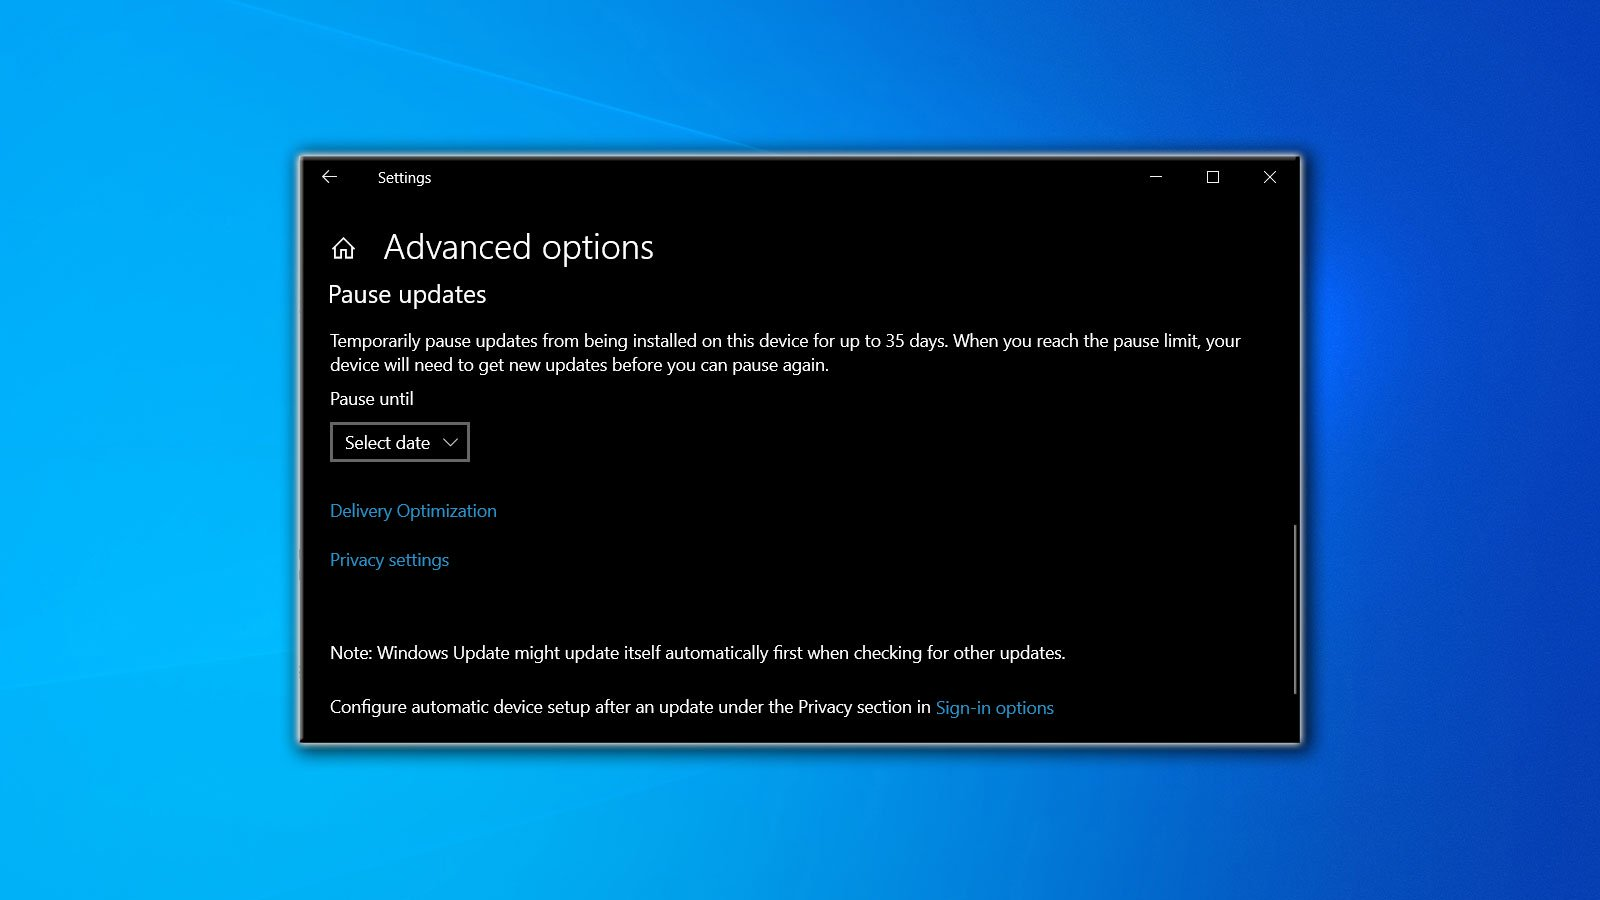 Microsoft removed the defer feature update setting in Windows 10